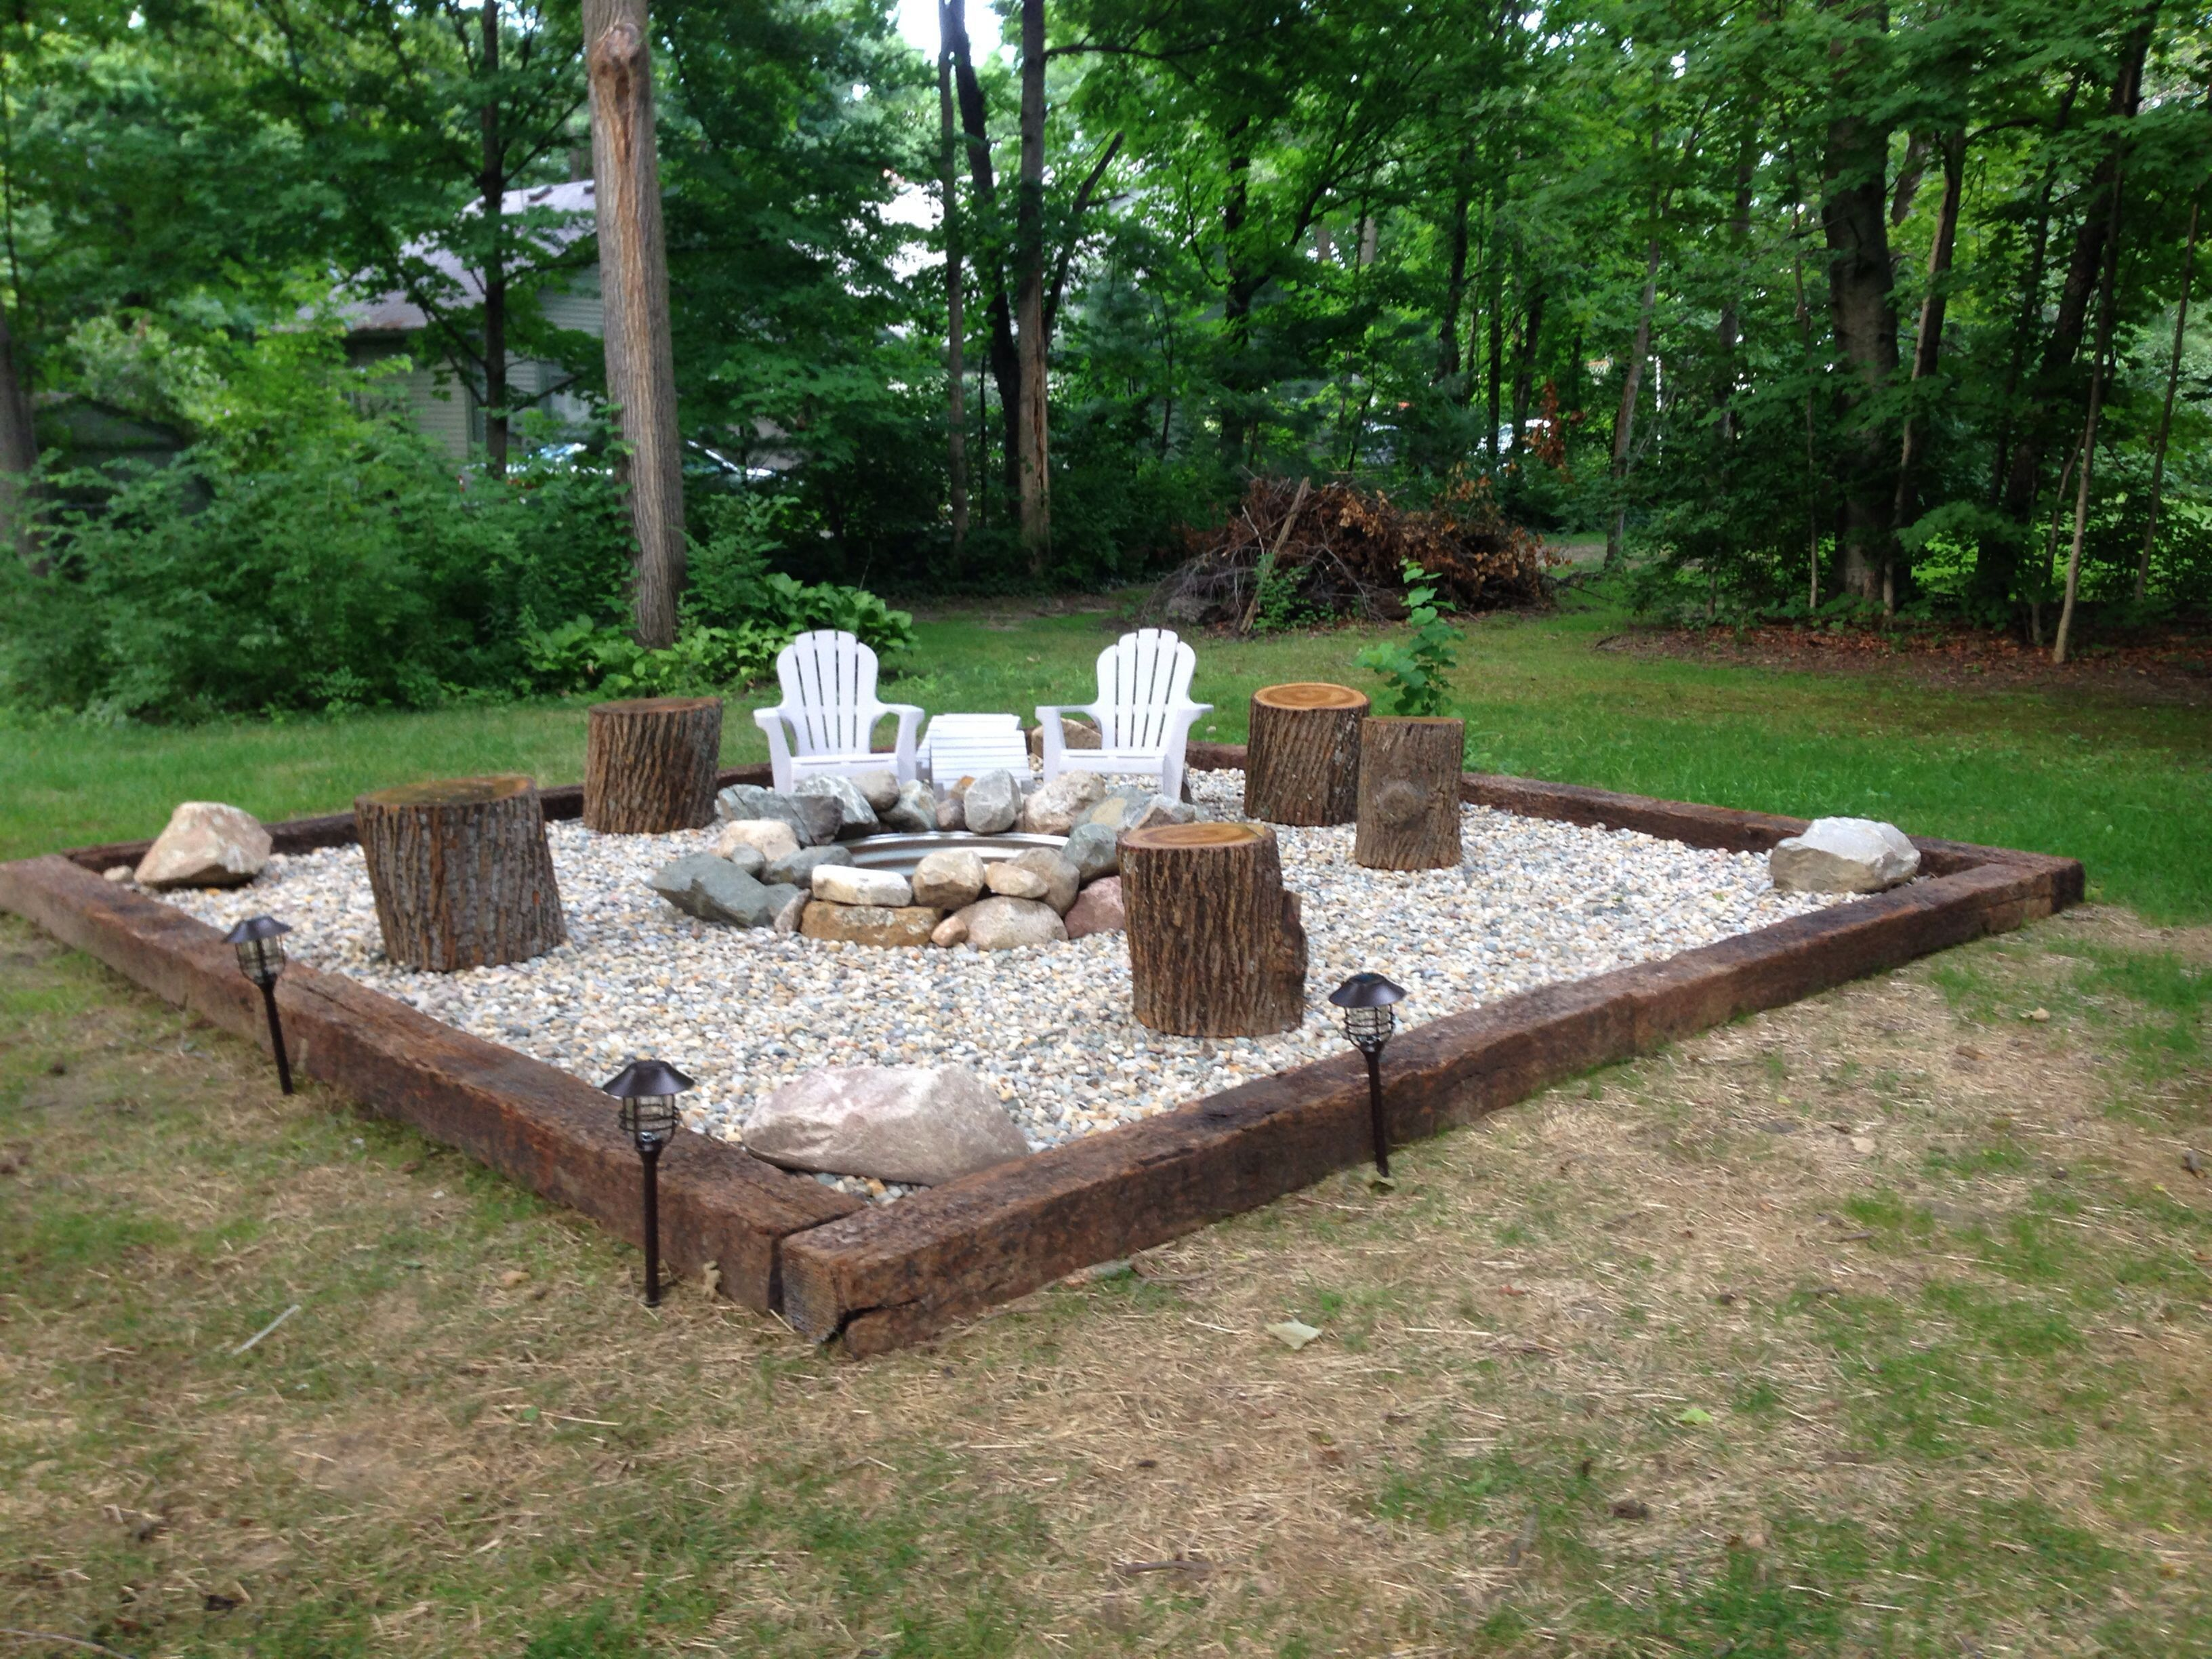 Merveilleux Awesome 20+ Most Amazing Fire Pit Design Ideas For Your Backyard Http://